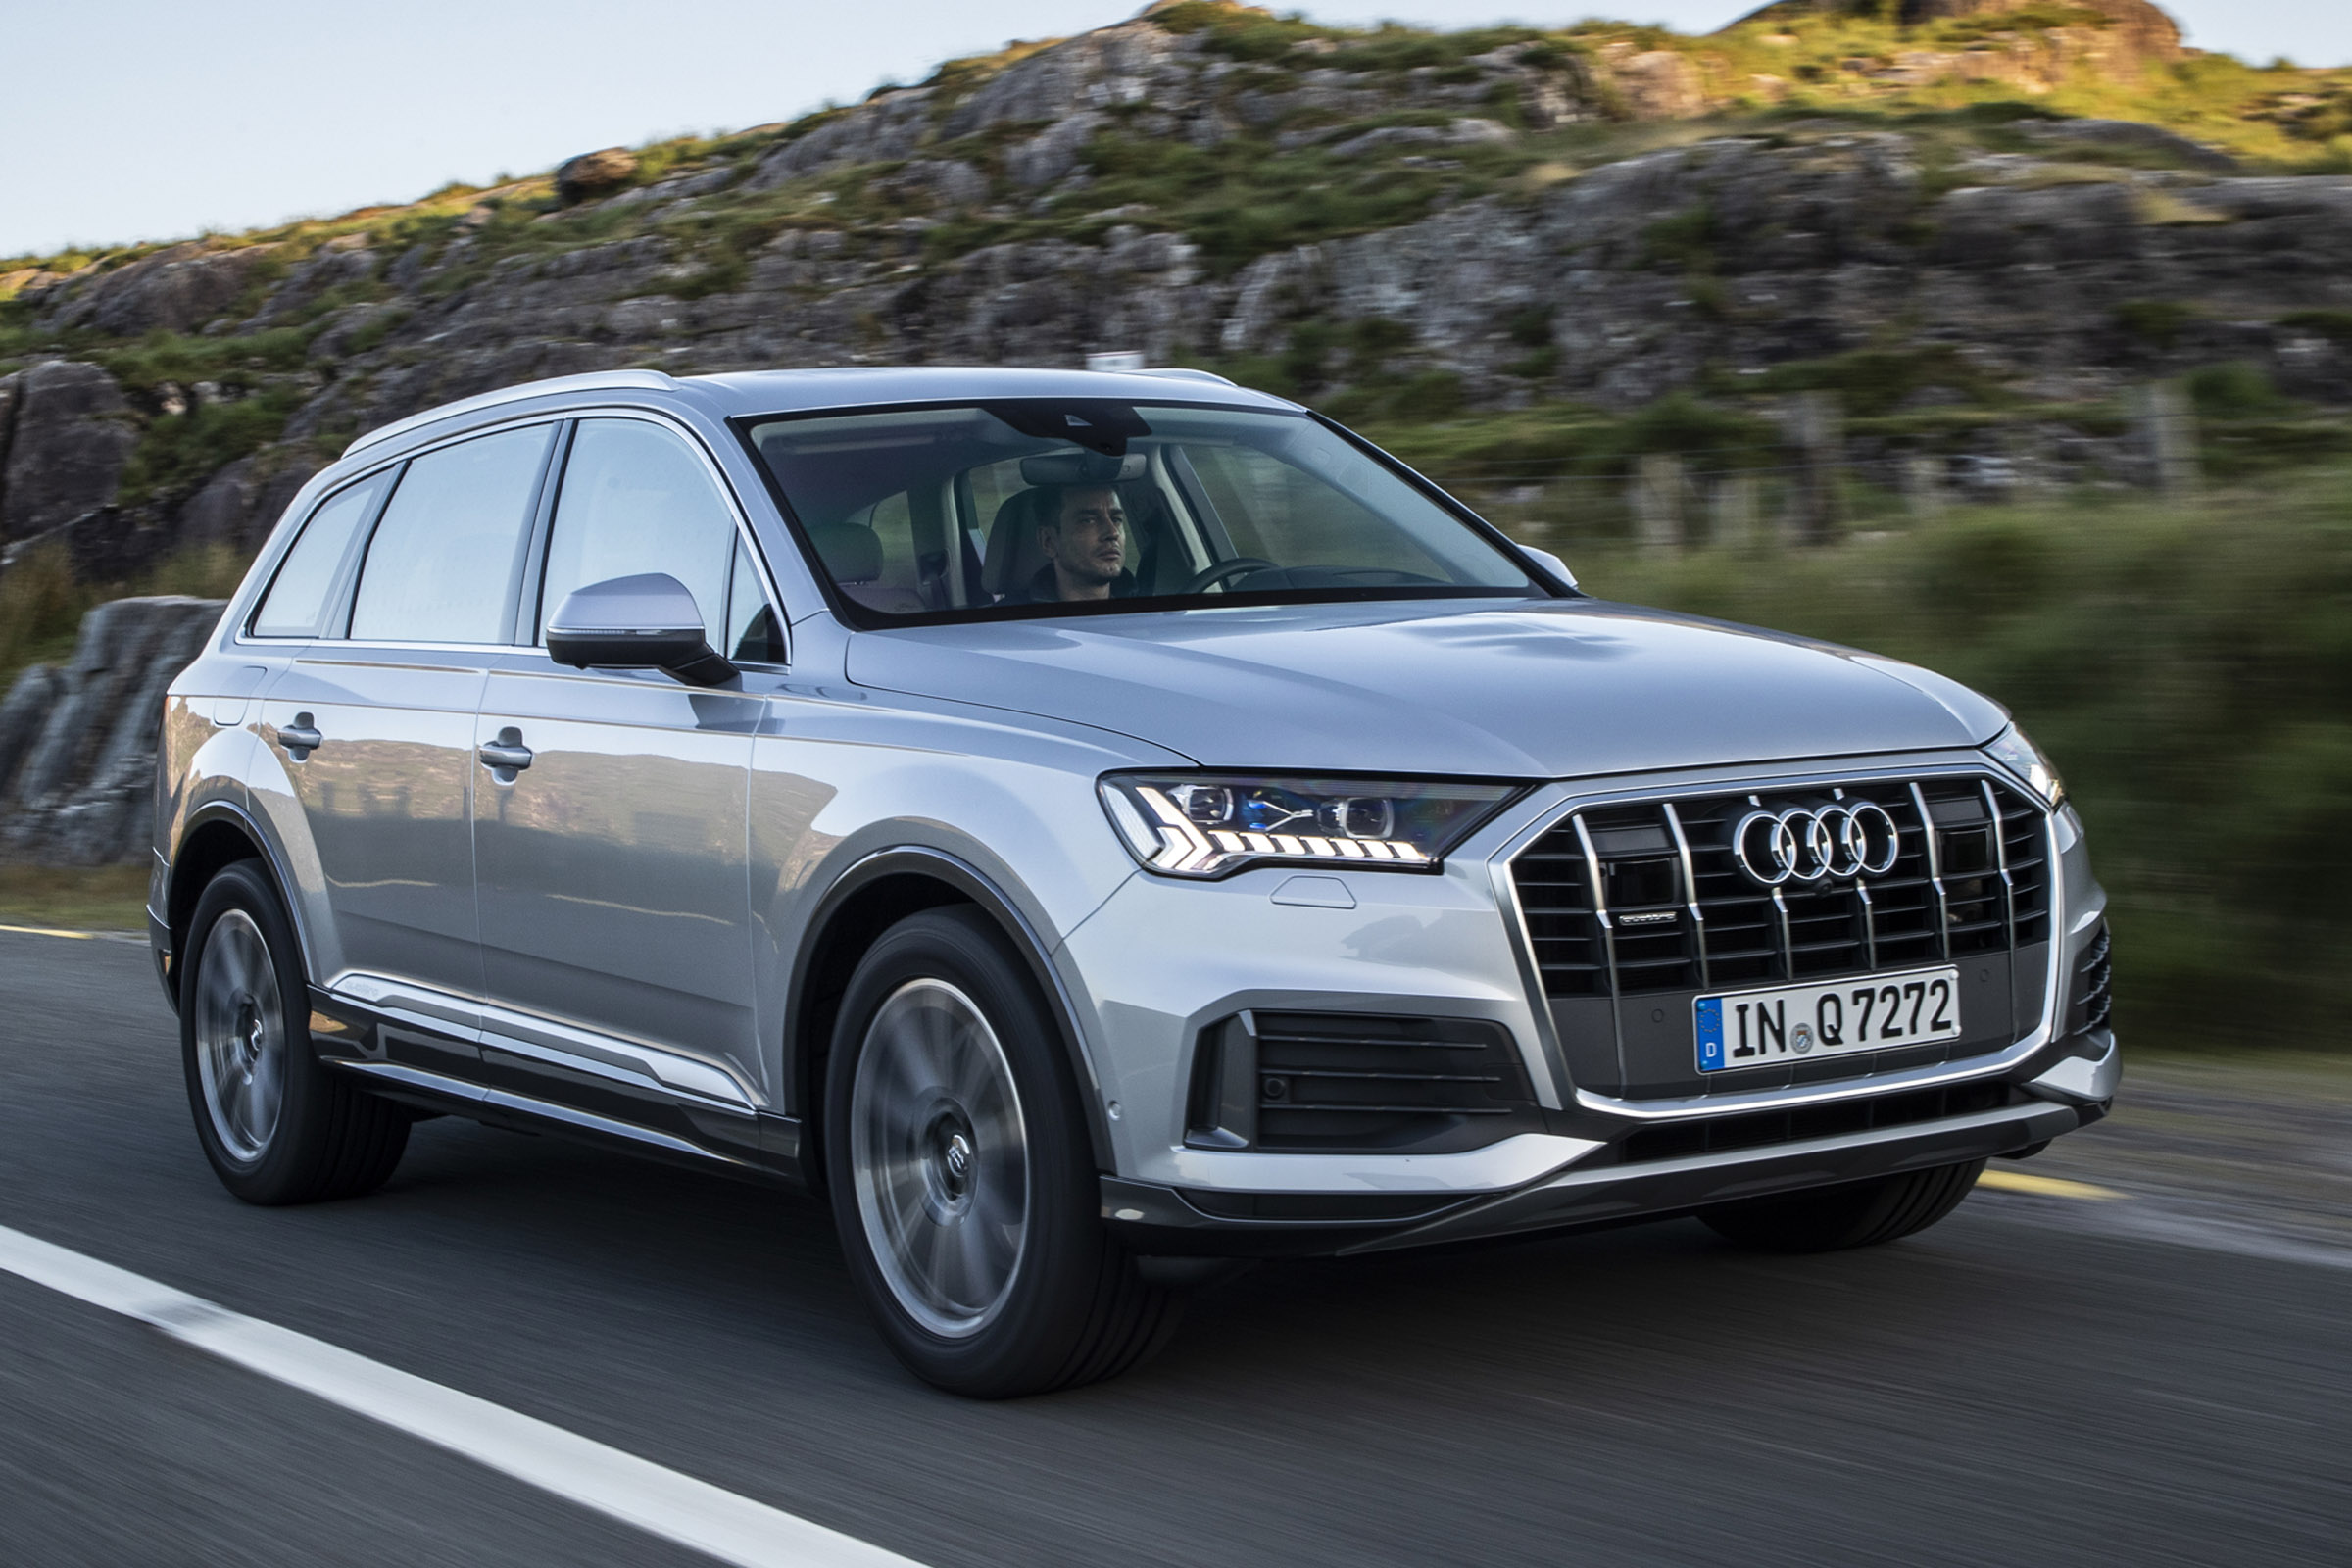 Audi Q7 Practicality Boot Size Dimensions Luggage Capacity Auto Express